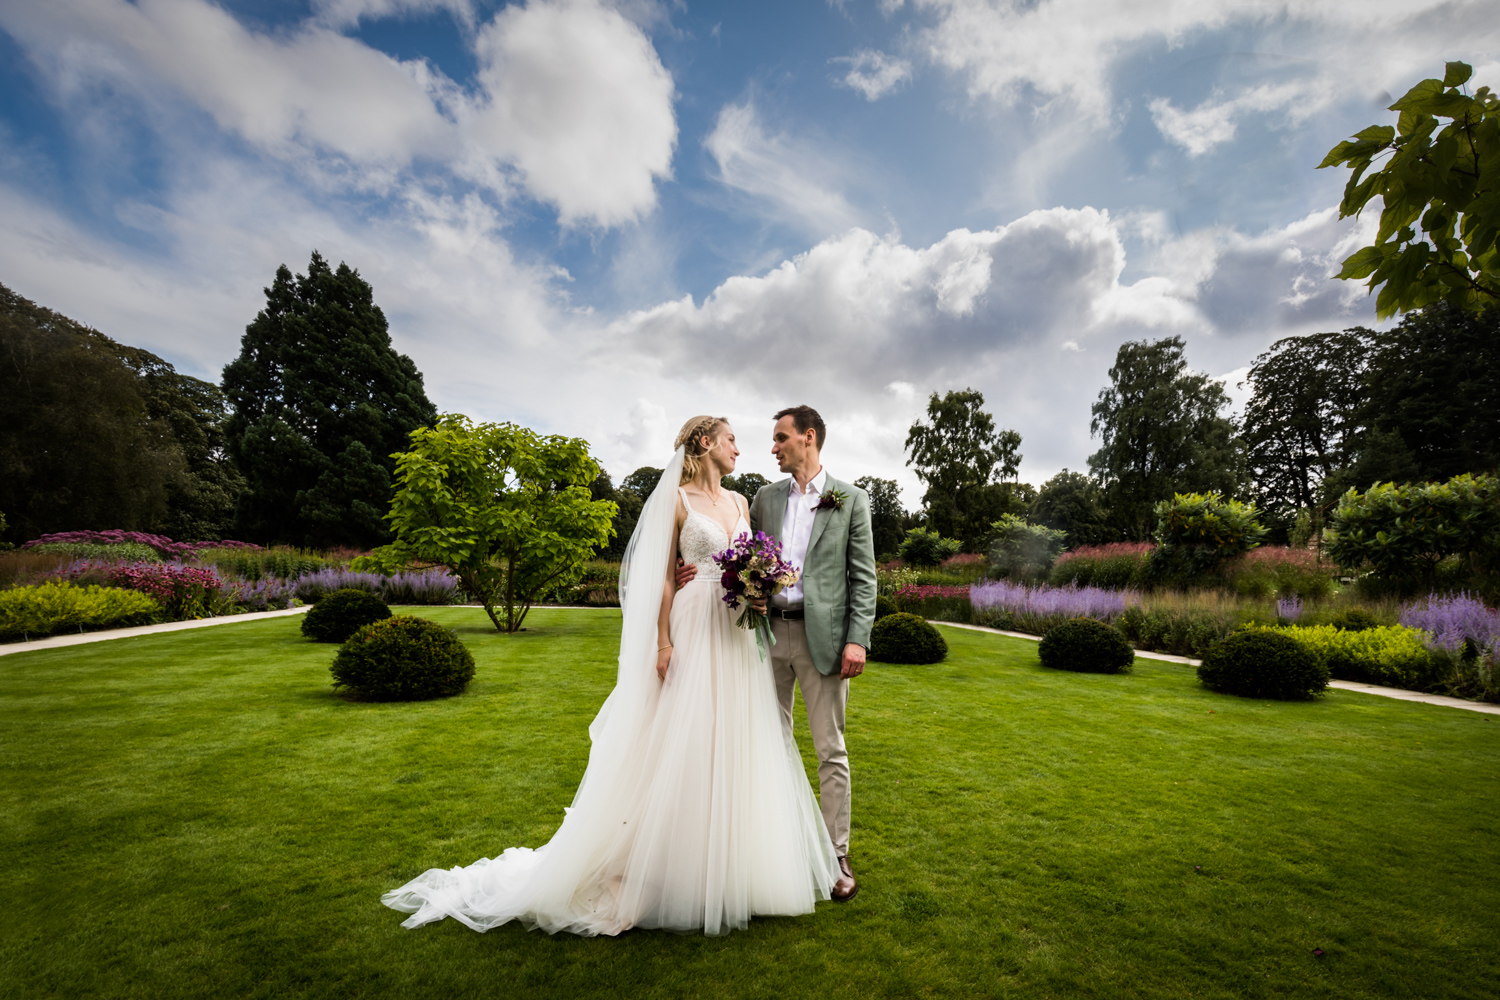 Middleton Lodge Wedding Photography - stunning gardens portrait